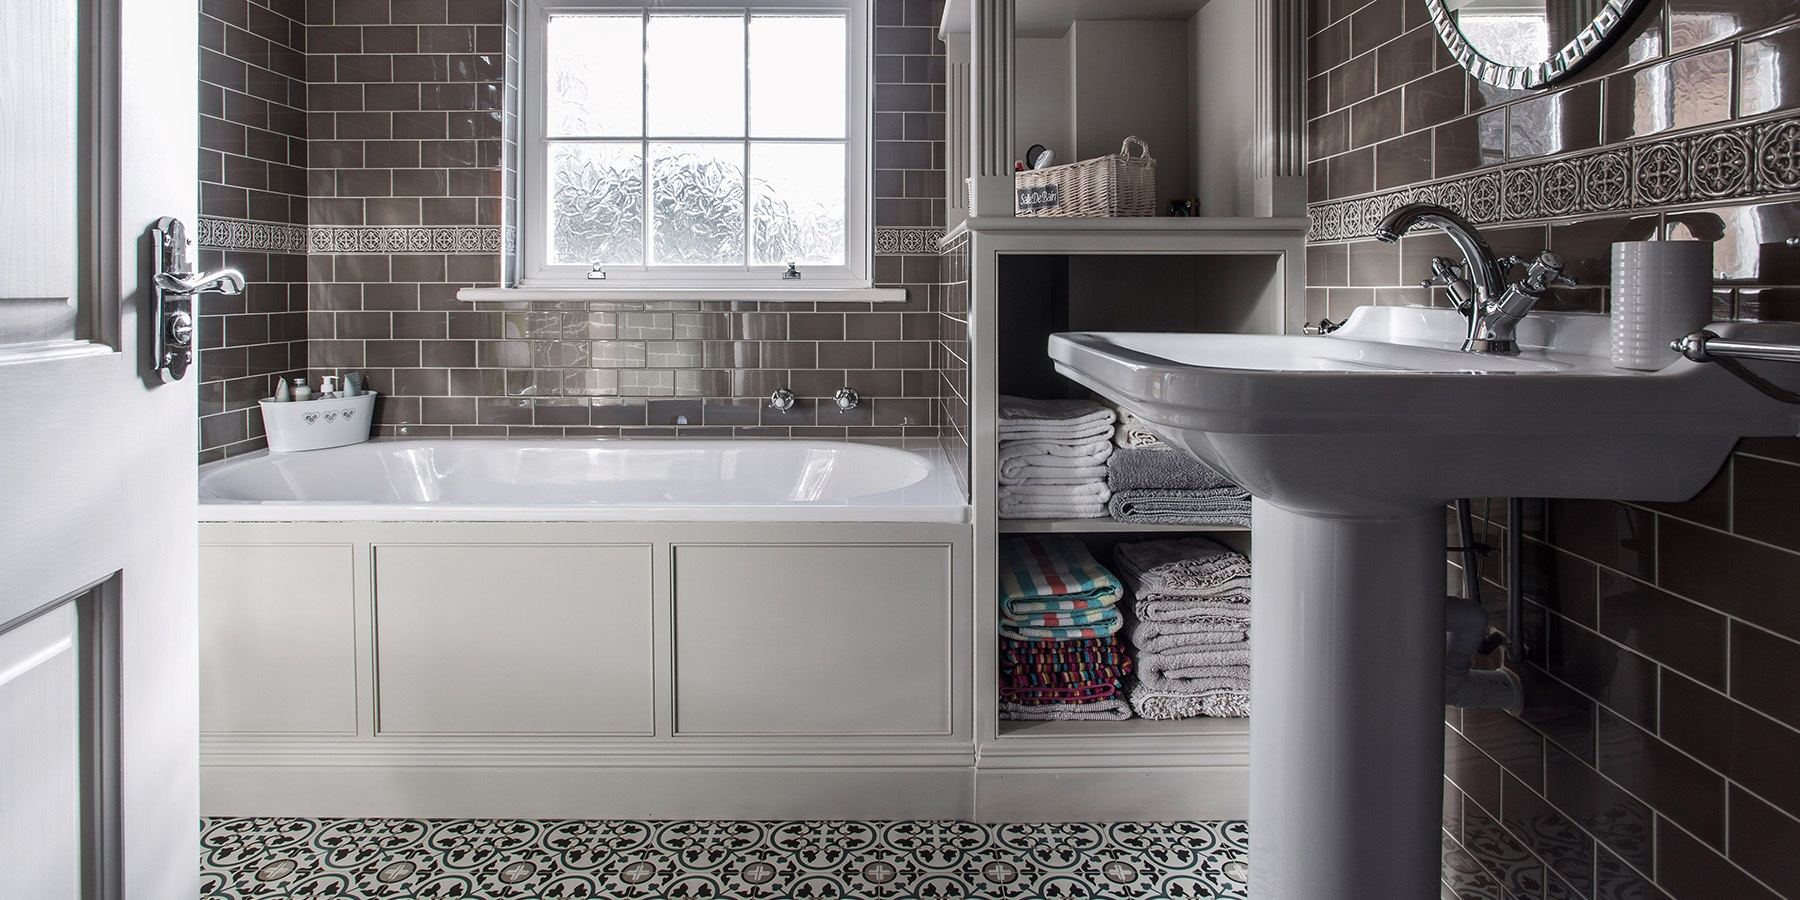 Bespoke Family Bathroom Design - Burlanes handmade bathroom storage solutions.